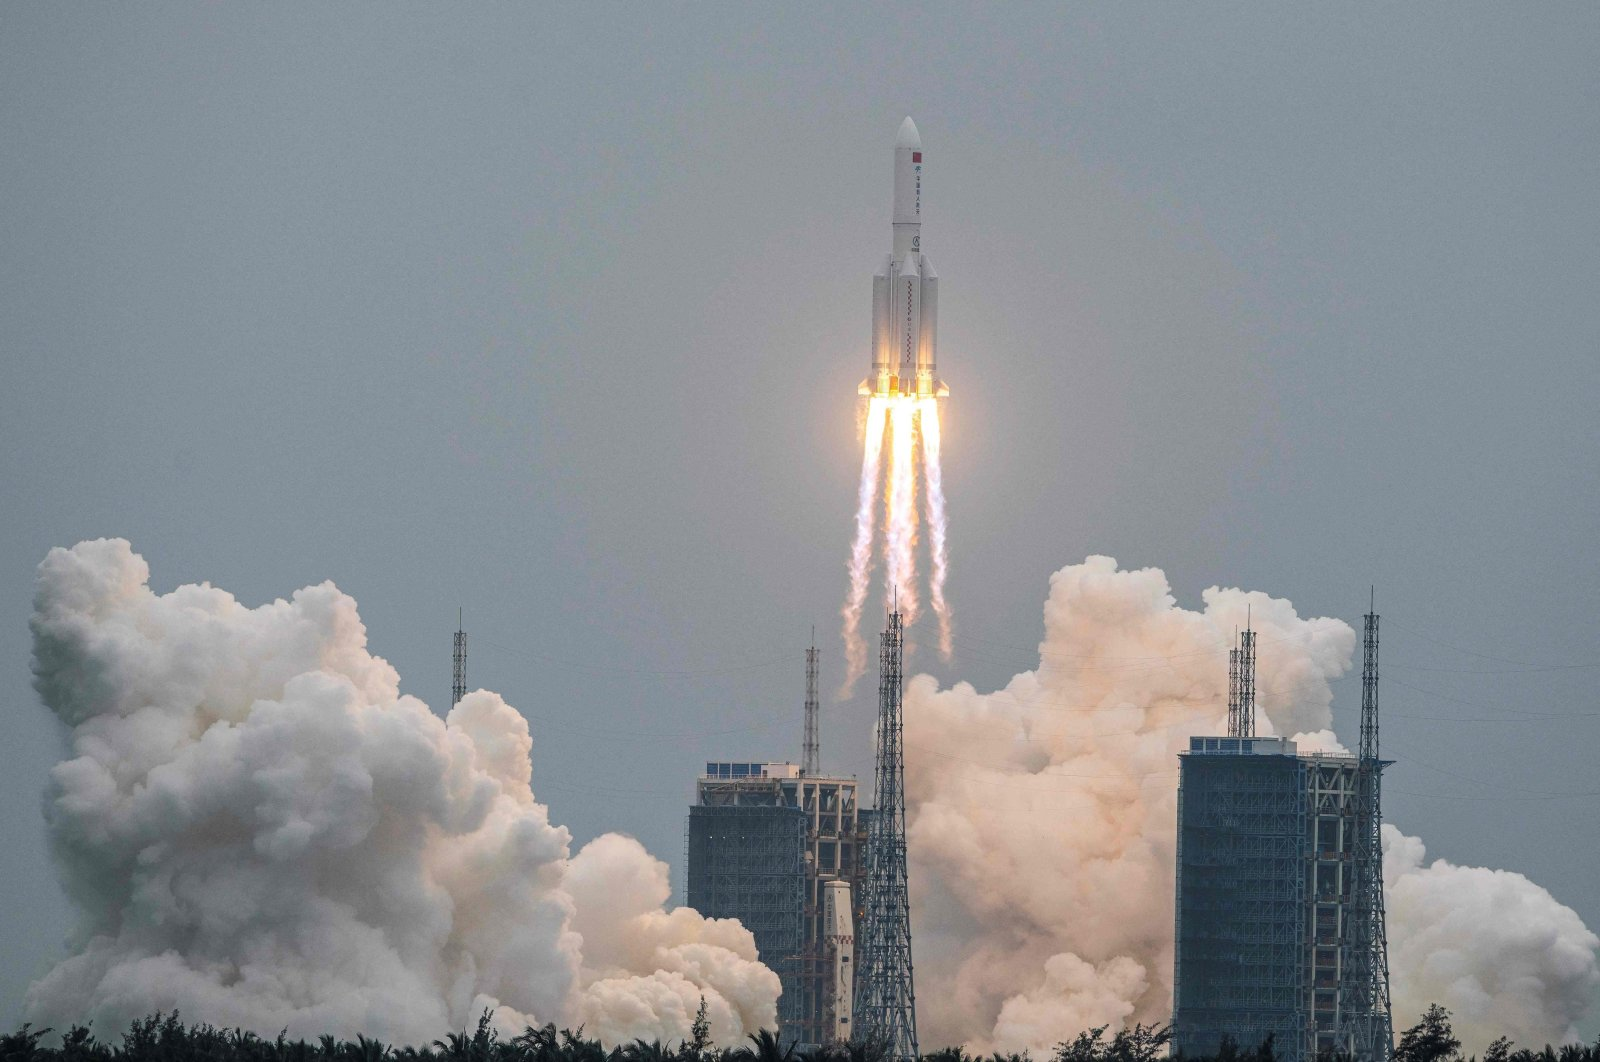 The Long March 5B rocket carrying China's Tianhe space station core module lifts off from Wenchang Space Launch Center in southern China's Hainan province, April 29, 2021. (AFP Photo)